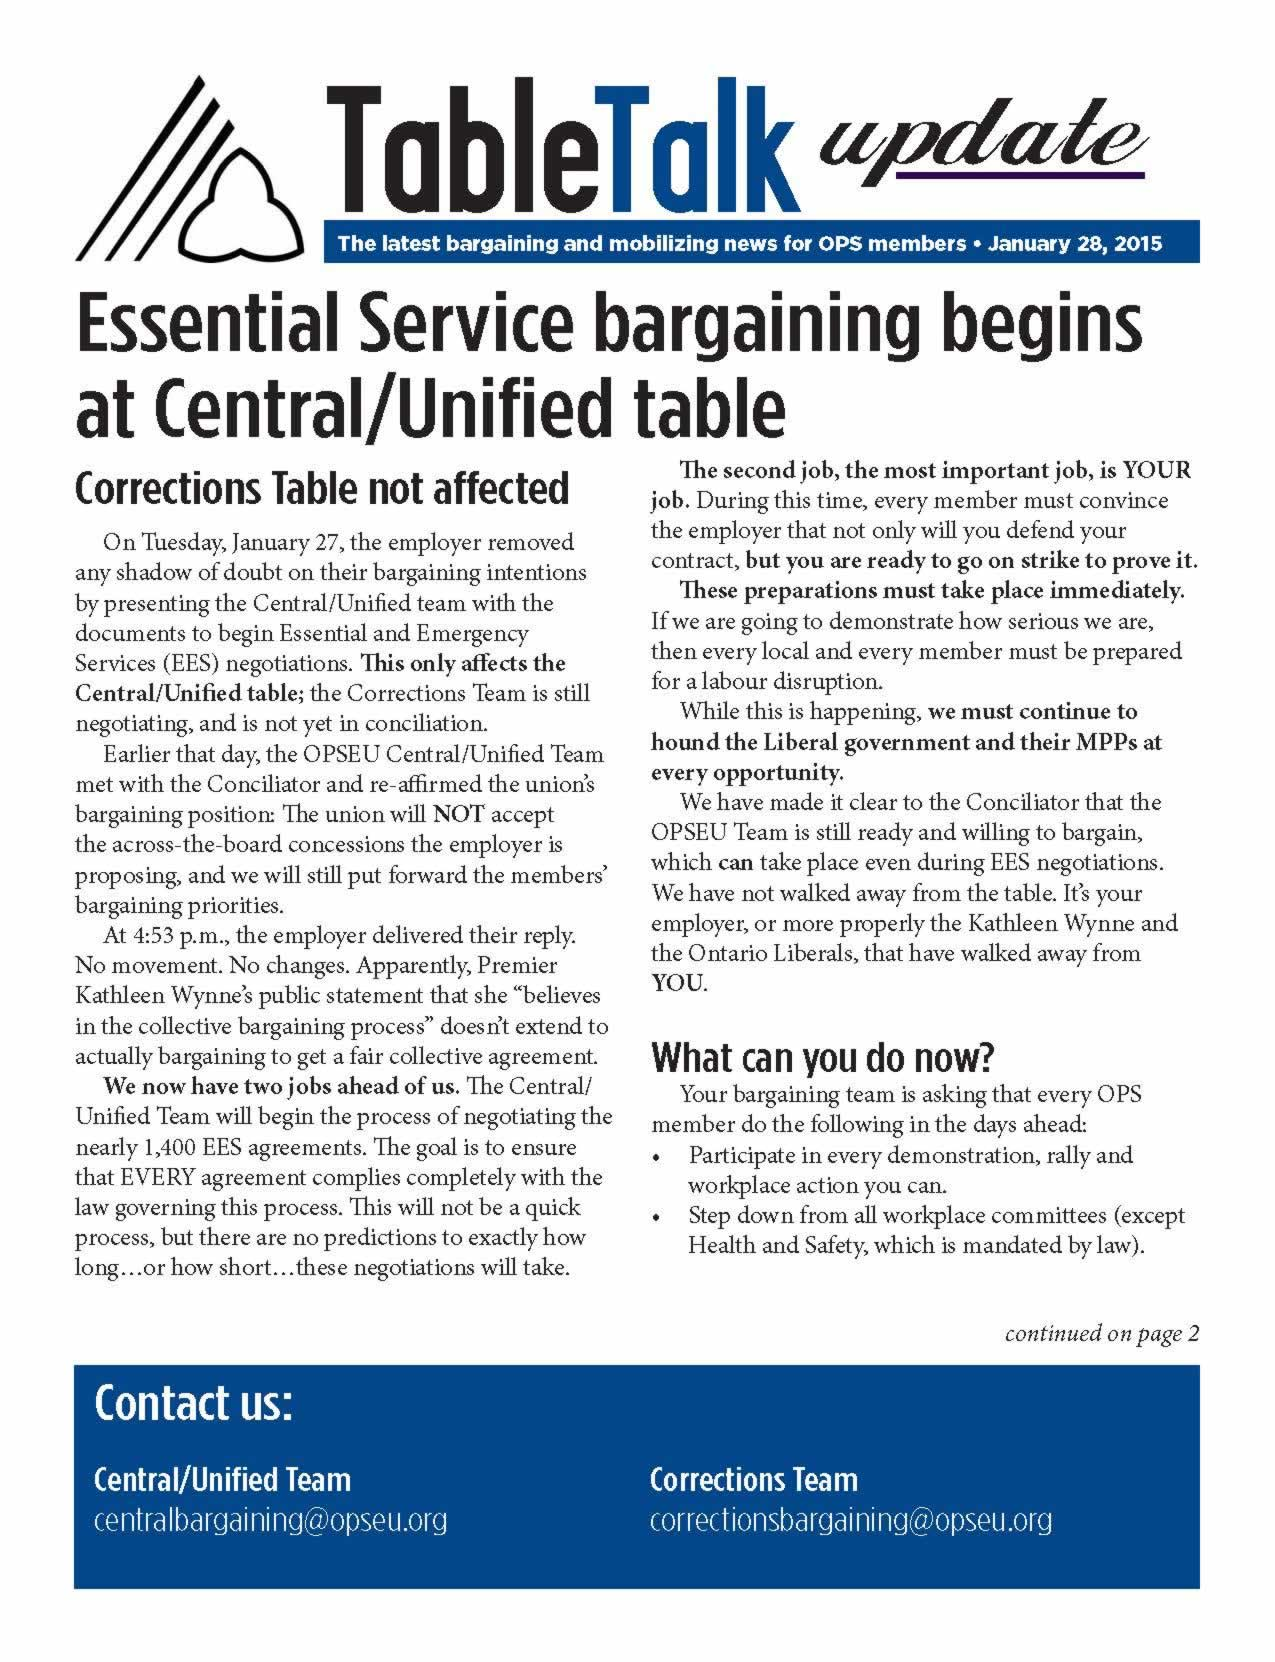 Table Talk Update: Essential Service bargaining begins at central/unified table